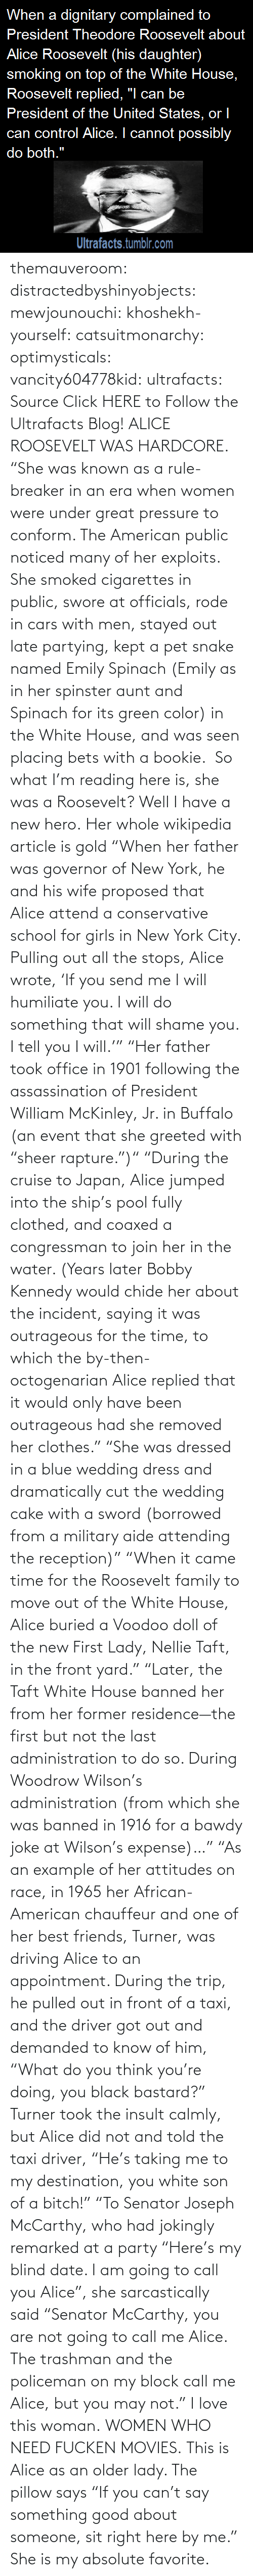 "Office: themauveroom: distractedbyshinyobjects:  mewjounouchi:  khoshekh-yourself:  catsuitmonarchy:  optimysticals:  vancity604778kid:  ultrafacts:     Source Click HERE to Follow the Ultrafacts Blog!     ALICE ROOSEVELT WAS HARDCORE. ""She was known as a rule-breaker in an era when women were under great pressure to conform. The American public noticed many of her exploits. She smoked cigarettes in public, swore at officials, rode in cars with men, stayed out late partying, kept a pet snake named Emily Spinach (Emily as in her spinster aunt and Spinach for its green color) in the White House, and was seen placing bets with a bookie.    So what I'm reading here is, she was a Roosevelt?  Well I have a new hero.  Her whole wikipedia article is gold ""When her father was governor of New York, he and his wife proposed that Alice attend a conservative school for girls in New York City. Pulling out all the stops, Alice wrote, 'If you send me I will humiliate you. I will do something that will shame you. I tell you I will.'"" ""Her father took office in 1901 following the assassination of President William McKinley, Jr. in Buffalo (an event that she greeted with ""sheer rapture."")"" ""During the cruise to Japan, Alice jumped into the ship's pool fully clothed, and coaxed a congressman to join her in the water. (Years later Bobby Kennedy would chide her about the incident, saying it was outrageous for the time, to which the by-then-octogenarian Alice replied that it would only have been outrageous had she removed her clothes."" ""She was dressed in a blue wedding dress and dramatically cut the wedding cake with a sword (borrowed from a military aide attending the reception)"" ""When it came time for the Roosevelt family to move out of the White House, Alice buried a Voodoo doll of the new First Lady, Nellie Taft, in the front yard."" ""Later, the Taft White House banned her from her former residence—the first but not the last administration to do so. During Woodrow Wilson's administration (from which she was banned in 1916 for a bawdy joke at Wilson's expense)…"" ""As an example of her attitudes on race, in 1965 her African-American chauffeur and one of her best friends, Turner, was driving Alice to an appointment. During the trip, he pulled out in front of a taxi, and the driver got out and demanded to know of him, ""What do you think you're doing, you black bastard?"" Turner took the insult calmly, but Alice did not and told the taxi driver, ""He's taking me to my destination, you white son of a bitch!"" ""To Senator Joseph McCarthy, who had jokingly remarked at a party ""Here's my blind date. I am going to call you Alice"", she sarcastically said ""Senator McCarthy, you are not going to call me Alice. The trashman and the policeman on my block call me Alice, but you may not.""  I love this woman.  WOMEN WHO NEED FUCKEN MOVIES.   This is Alice as an older lady. The pillow says ""If you can't say something good about someone, sit right here by me.""  She is my absolute favorite."